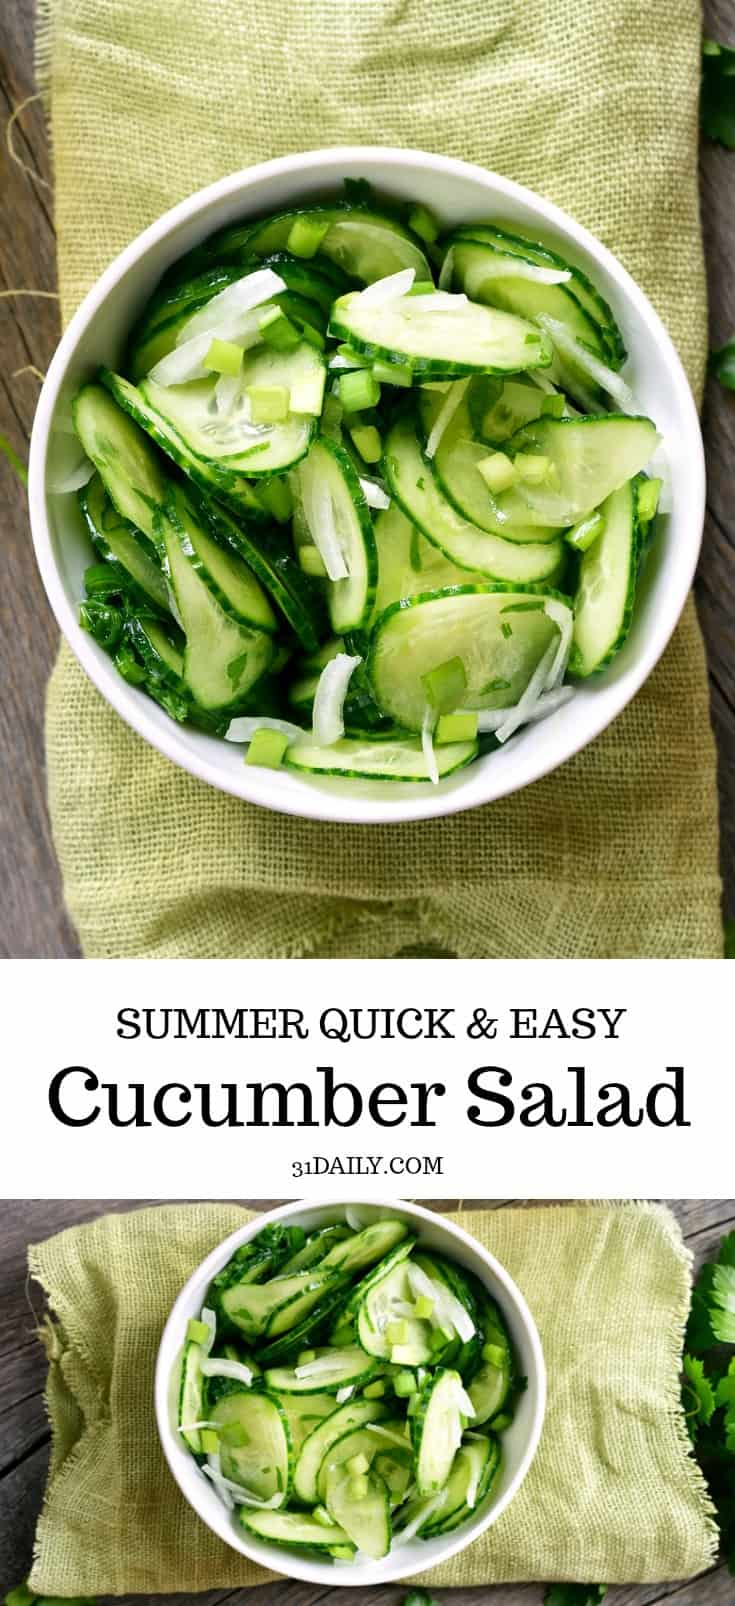 A Quick Cucumber Salad You'll Make All Summer Long | 31Daily.com